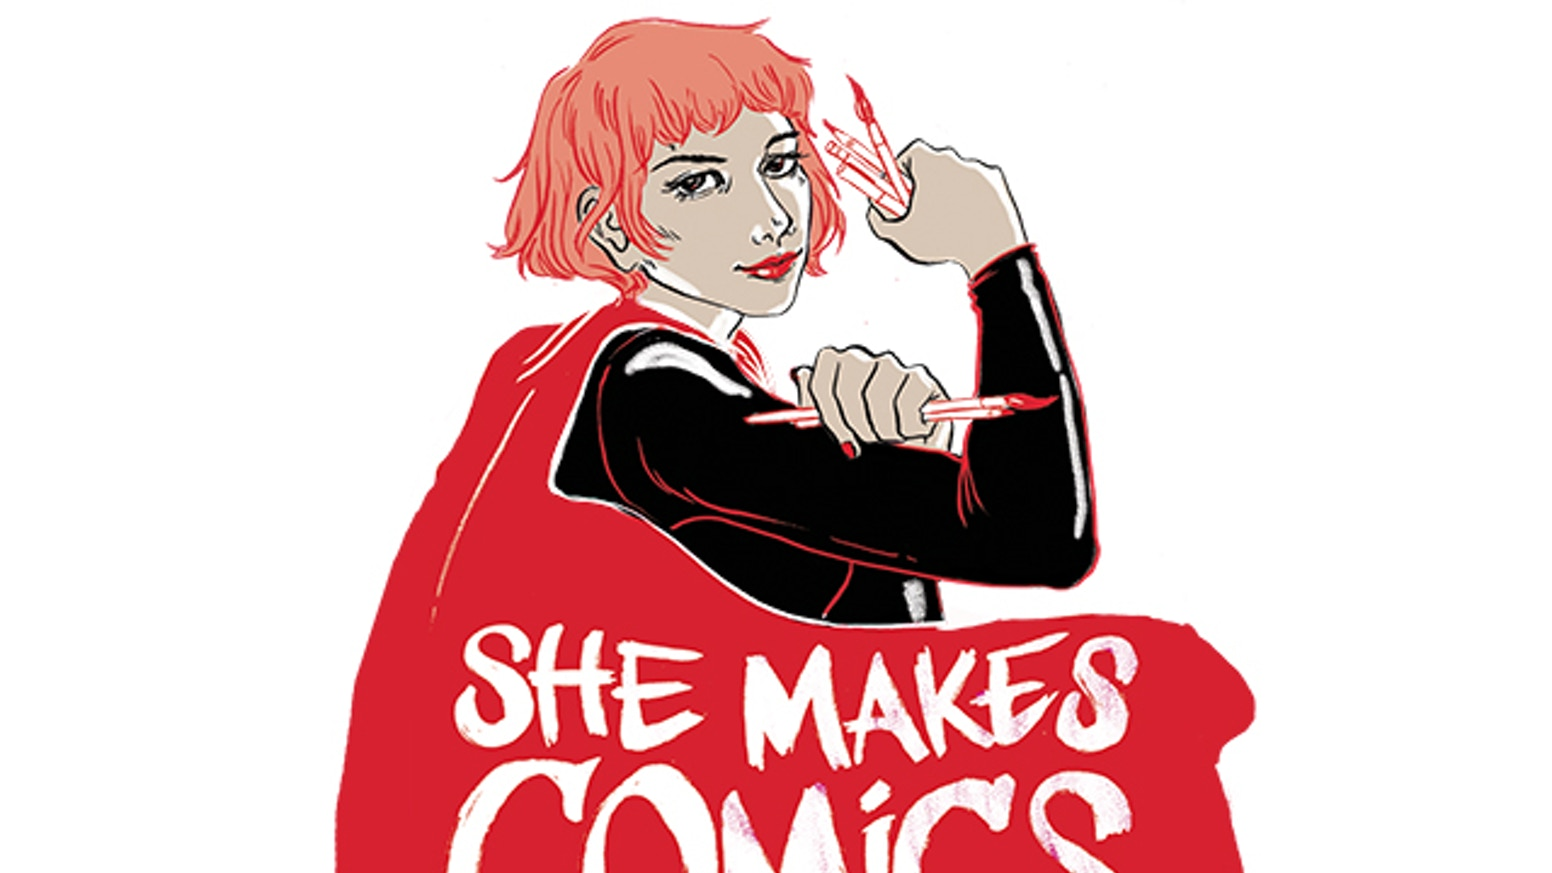 A documentary film about the untold history of women in comic books, celebrating female creators and fans alike.